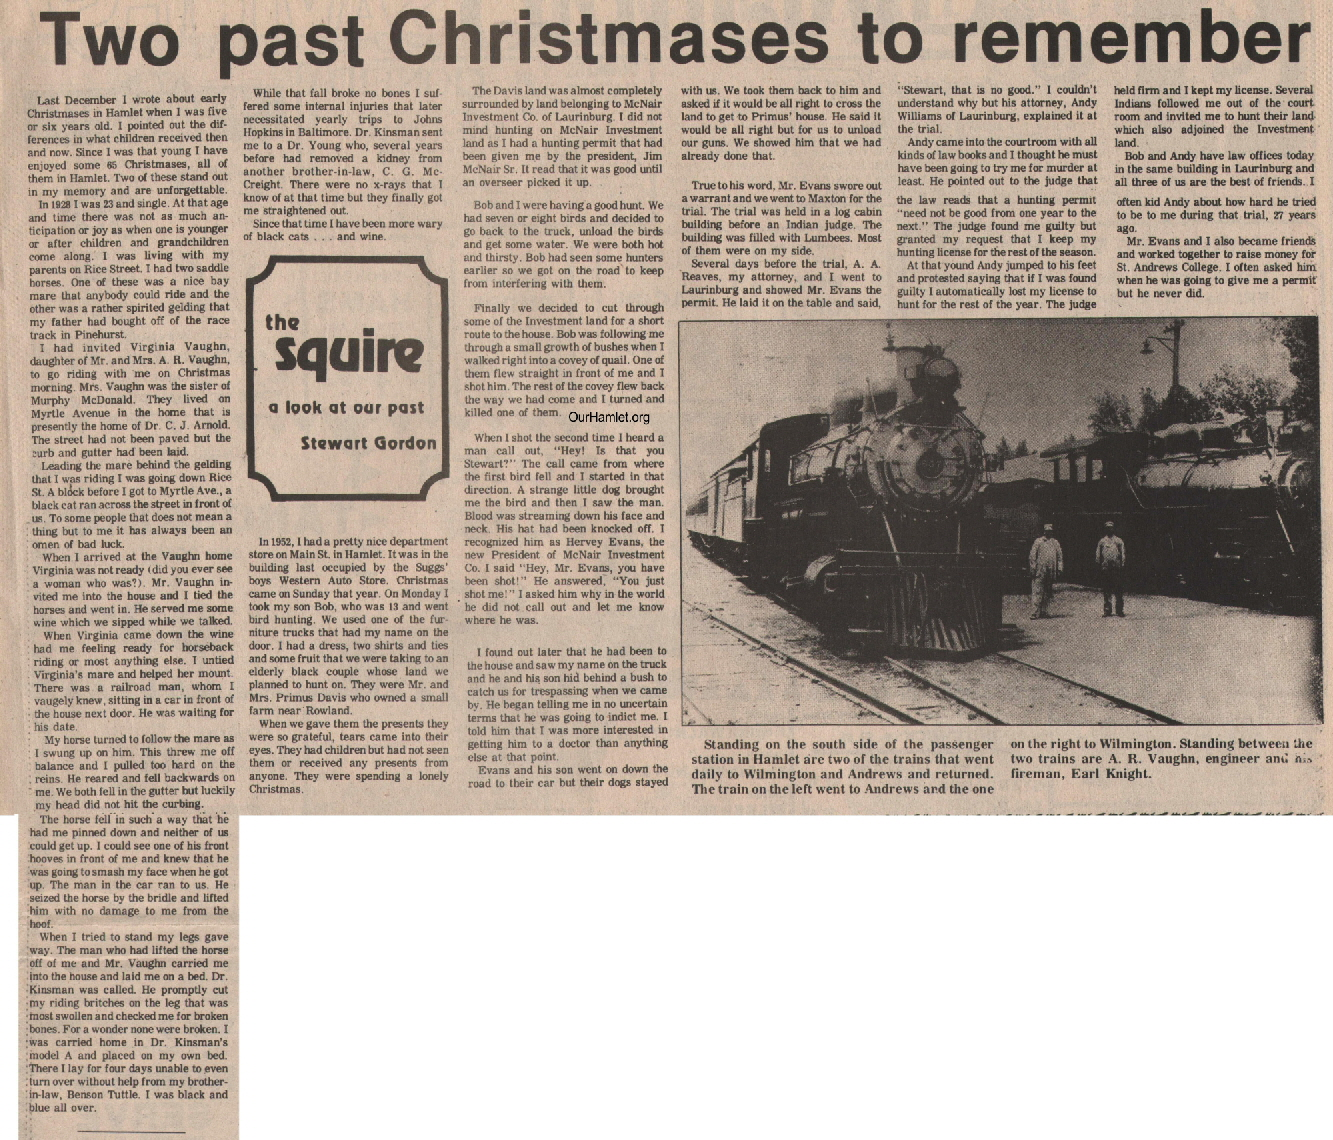 The Squire - Two past Christmases to remember OH